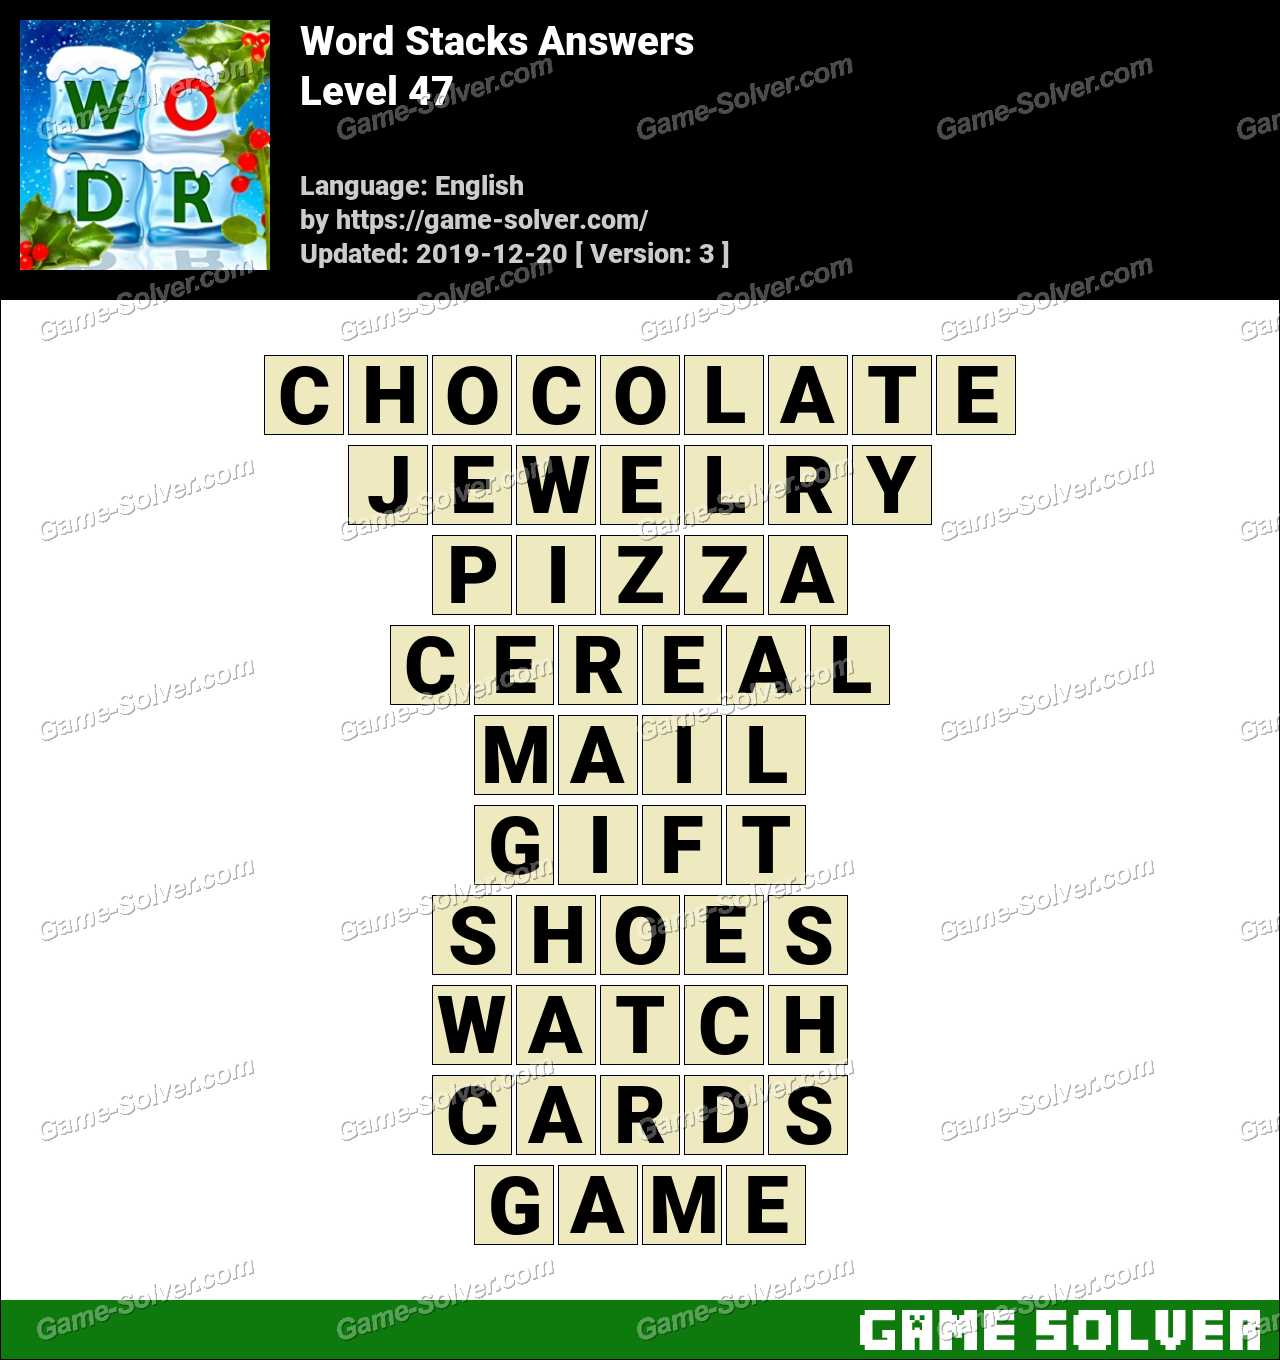 Word Stacks Level 47 Answers